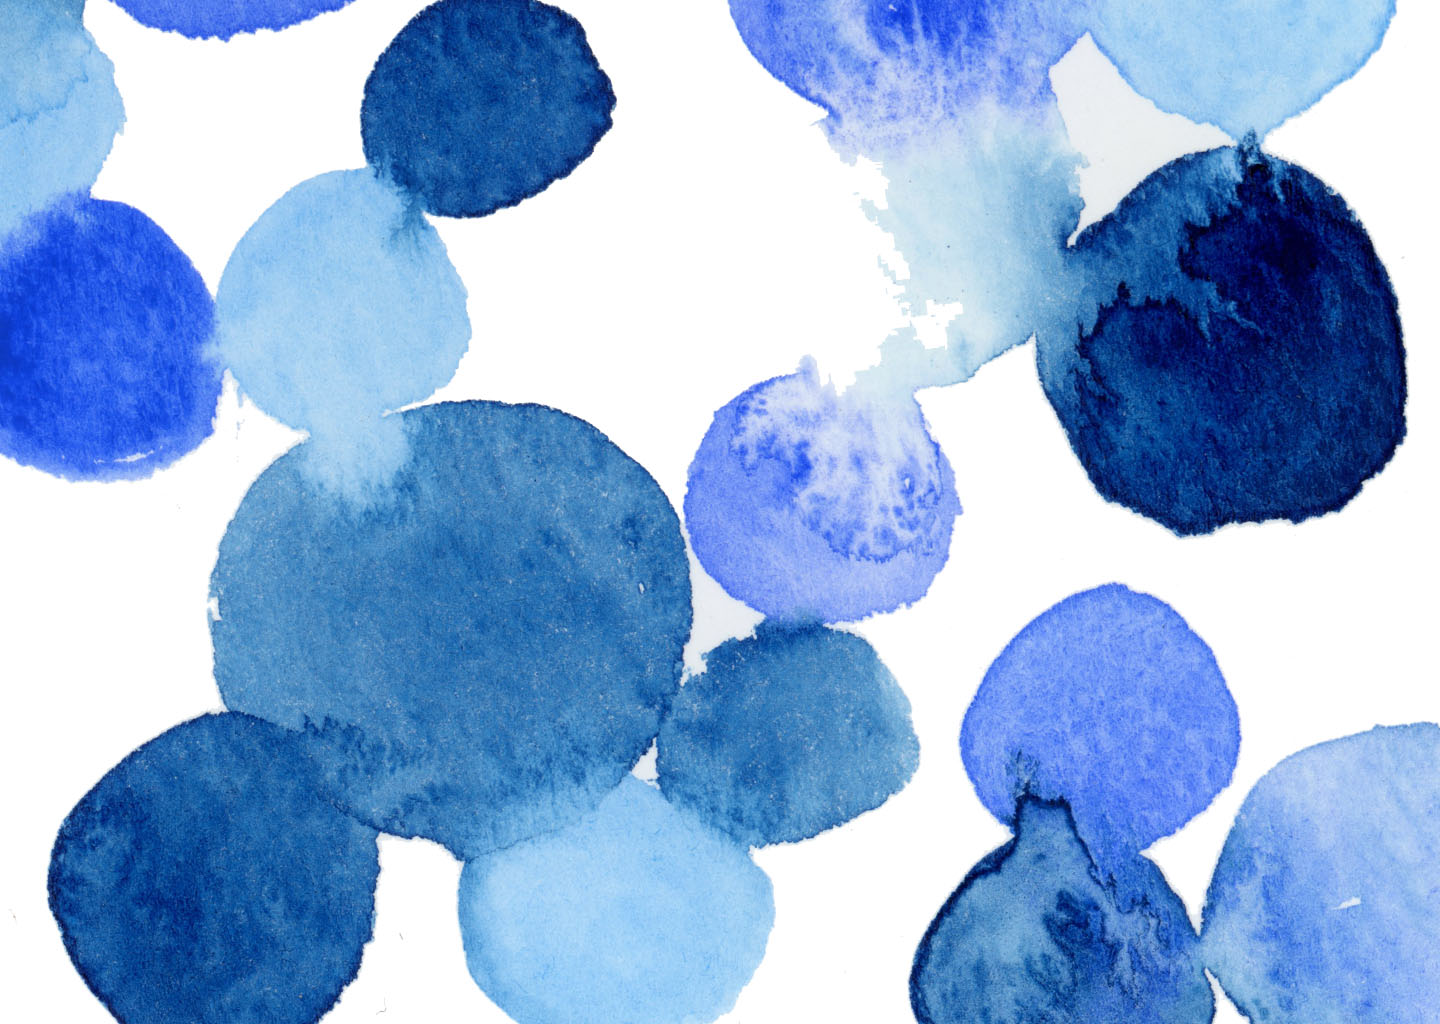 blue circles wallpaper.jpg